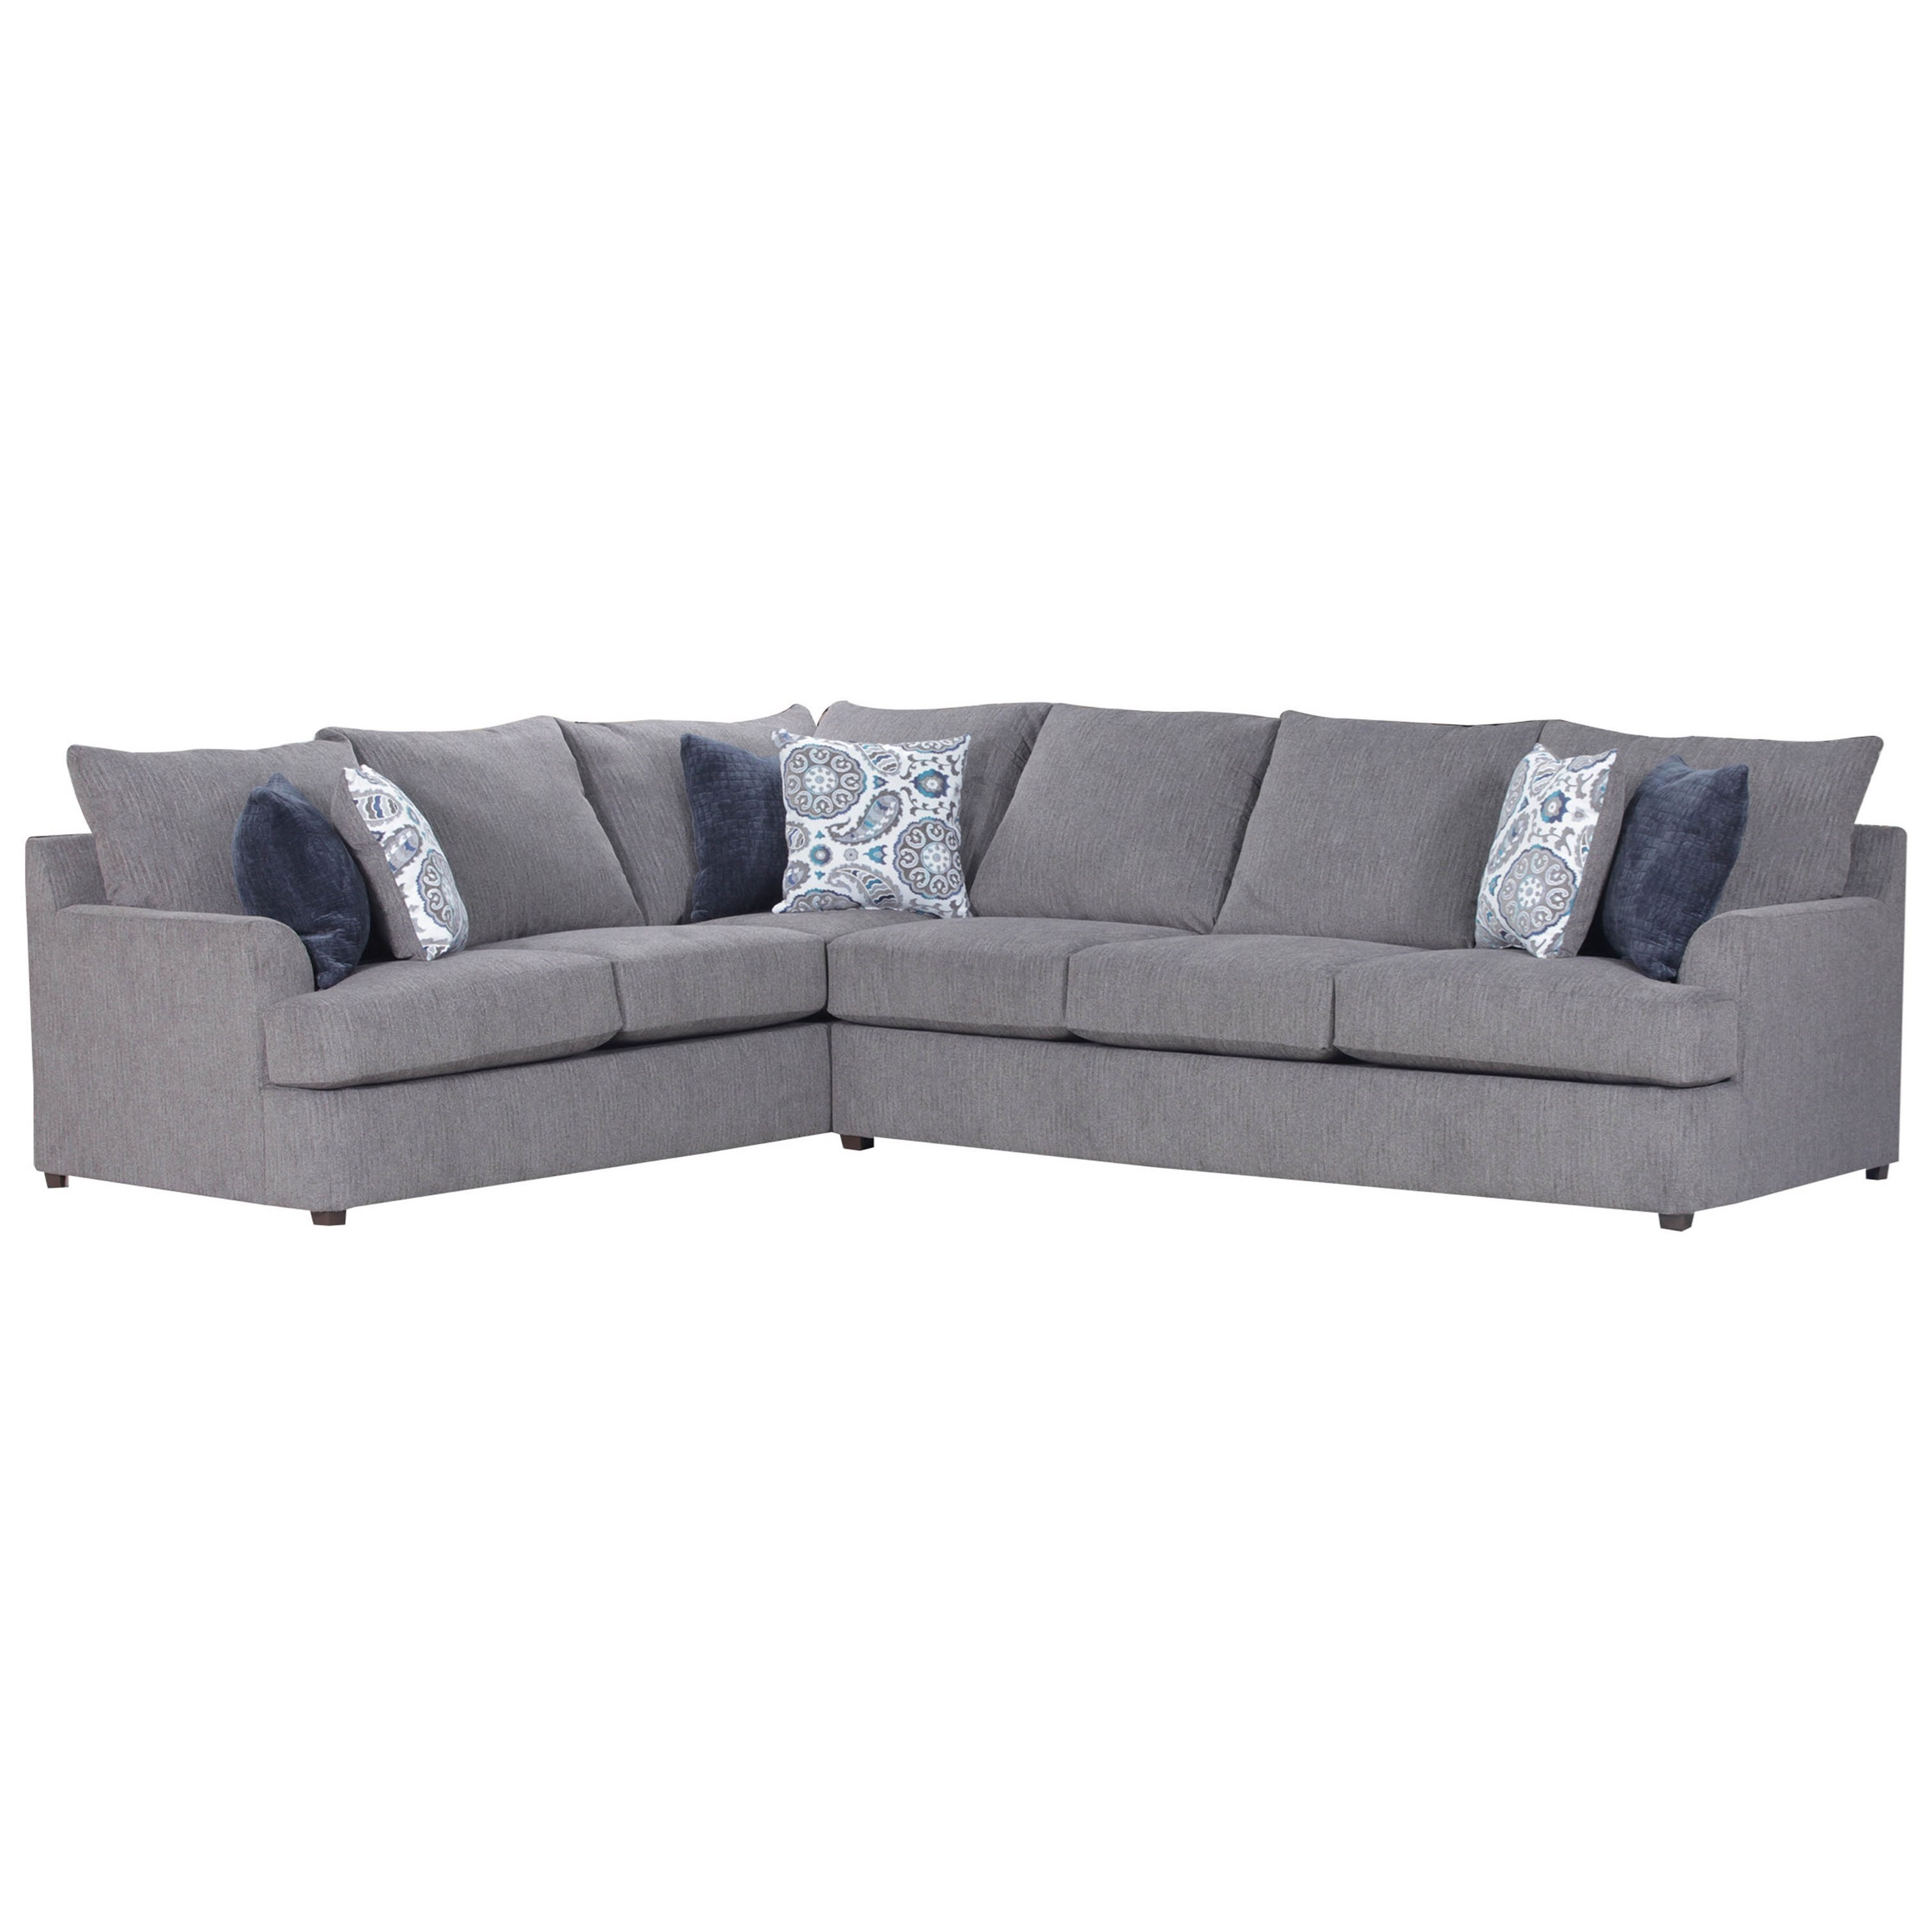 Simmons Upholstery 8540BR Casual Sectional Sofa